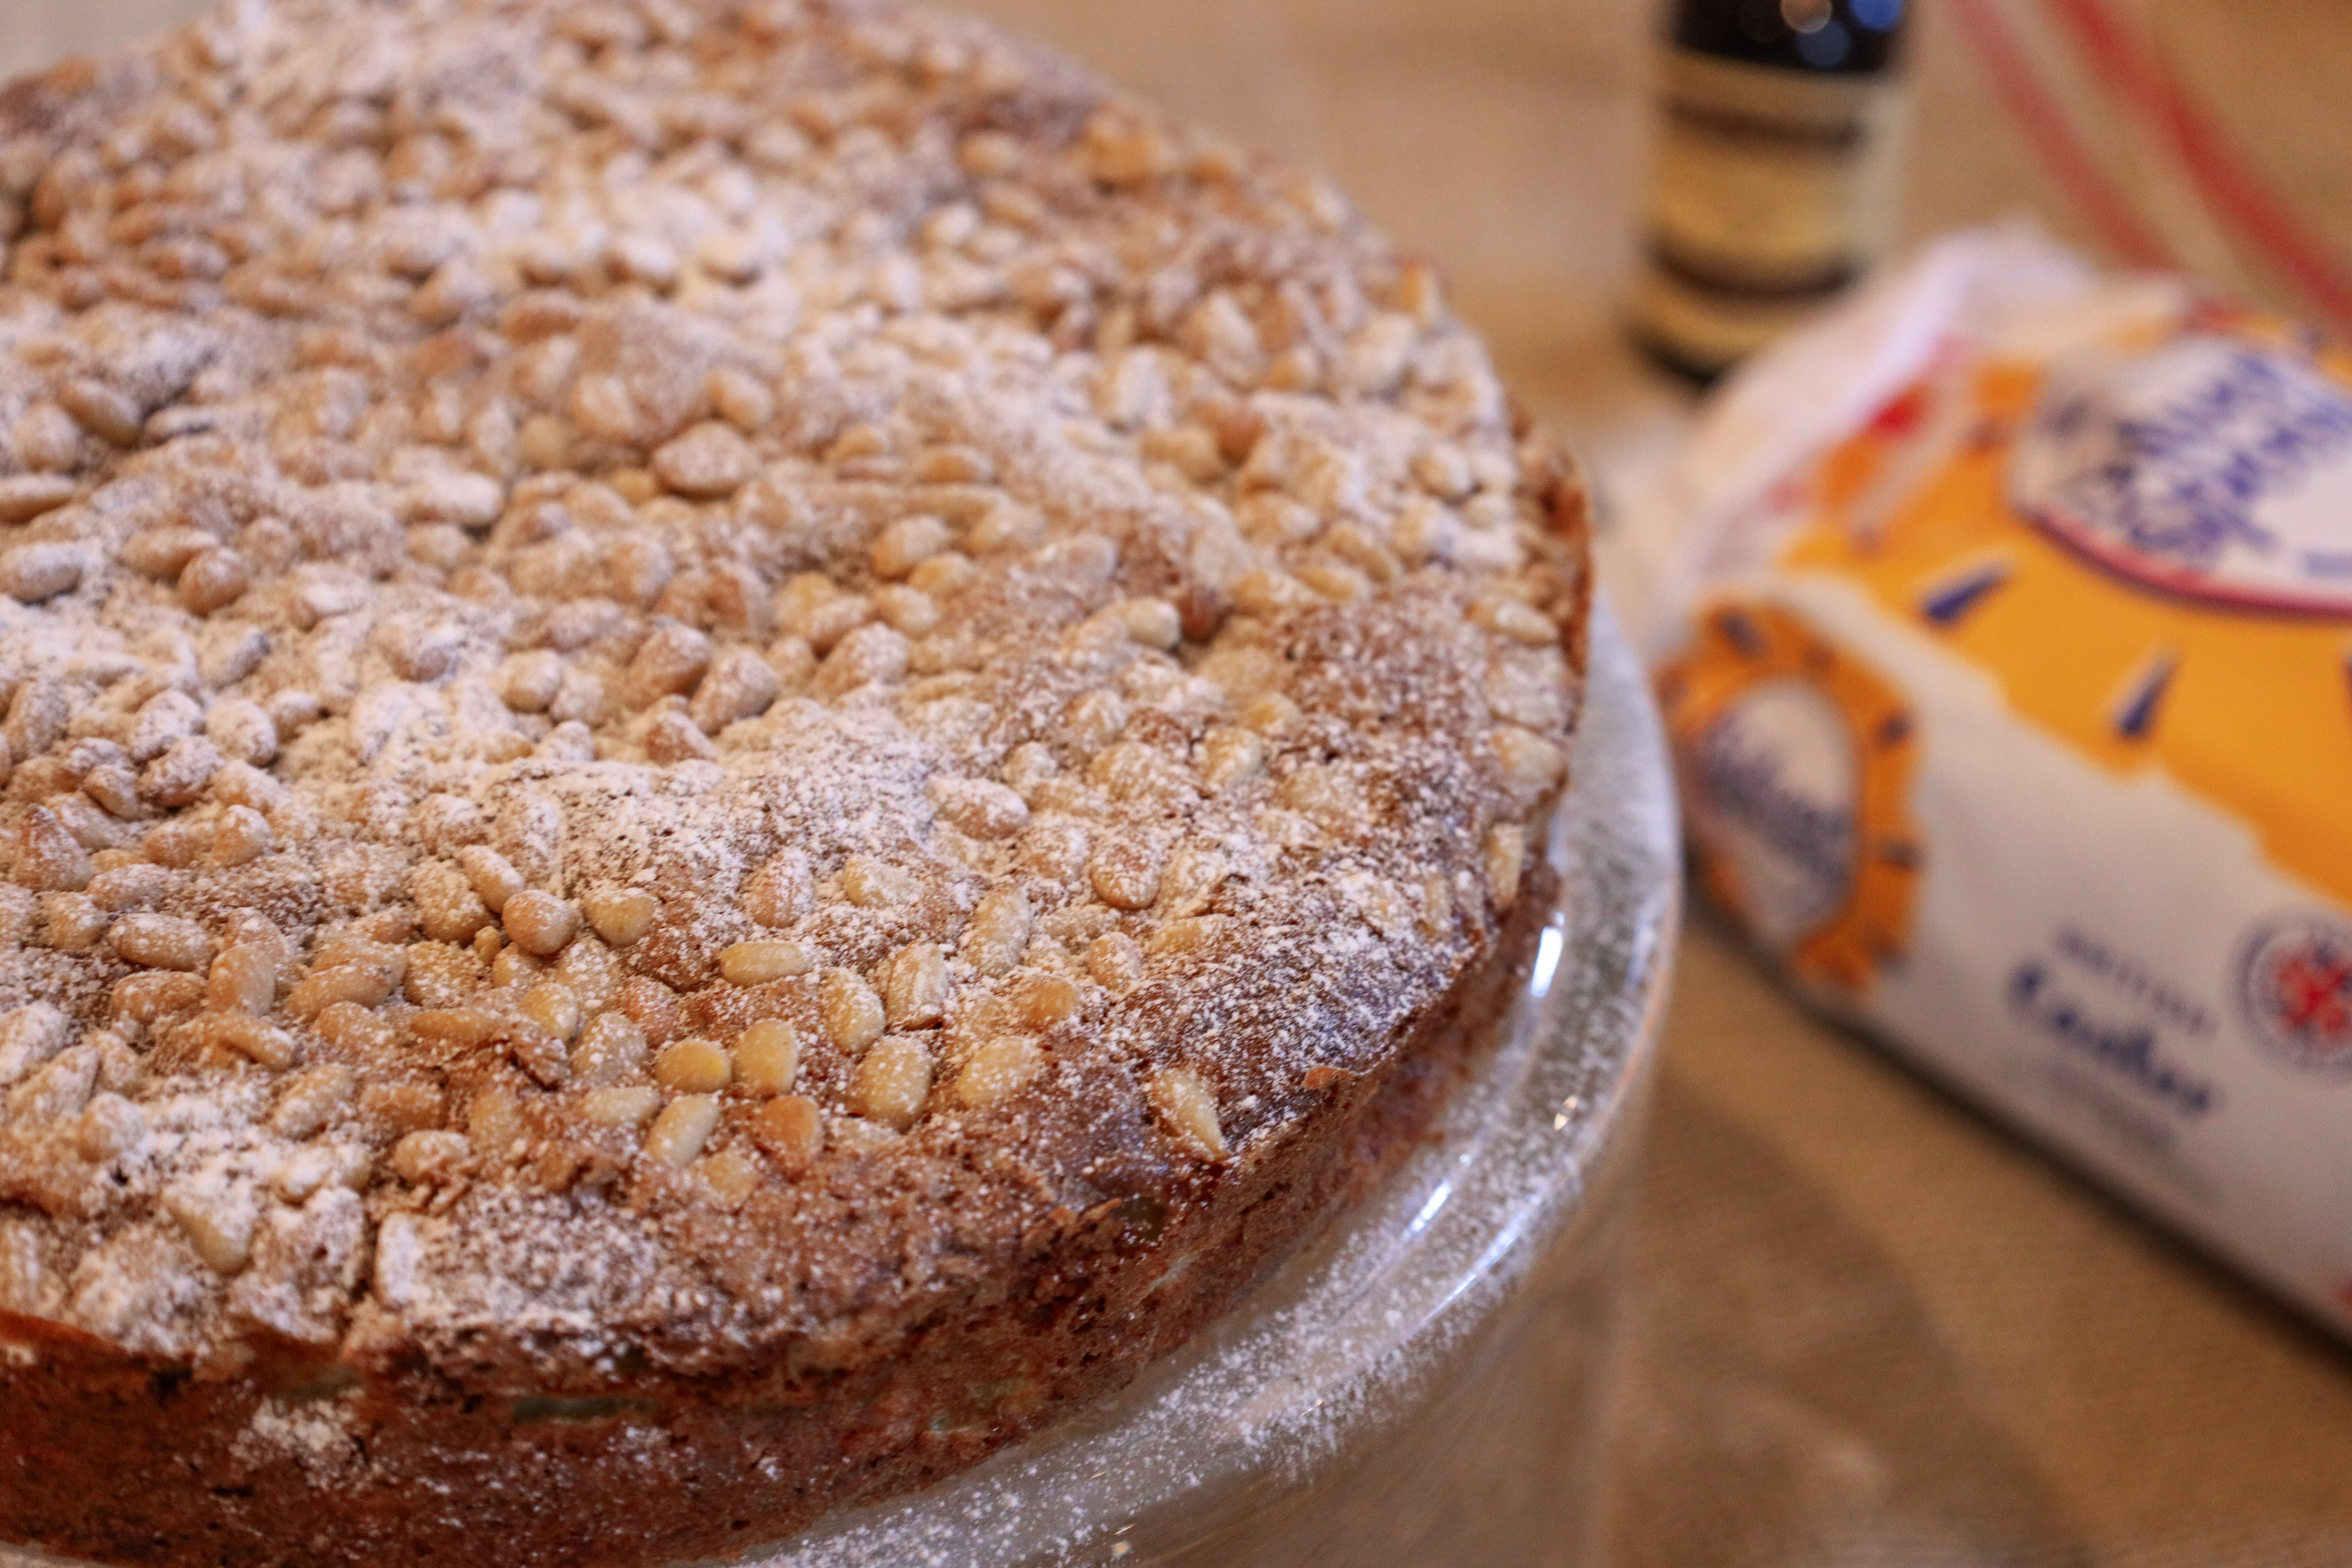 Apple Cake with sugar in background